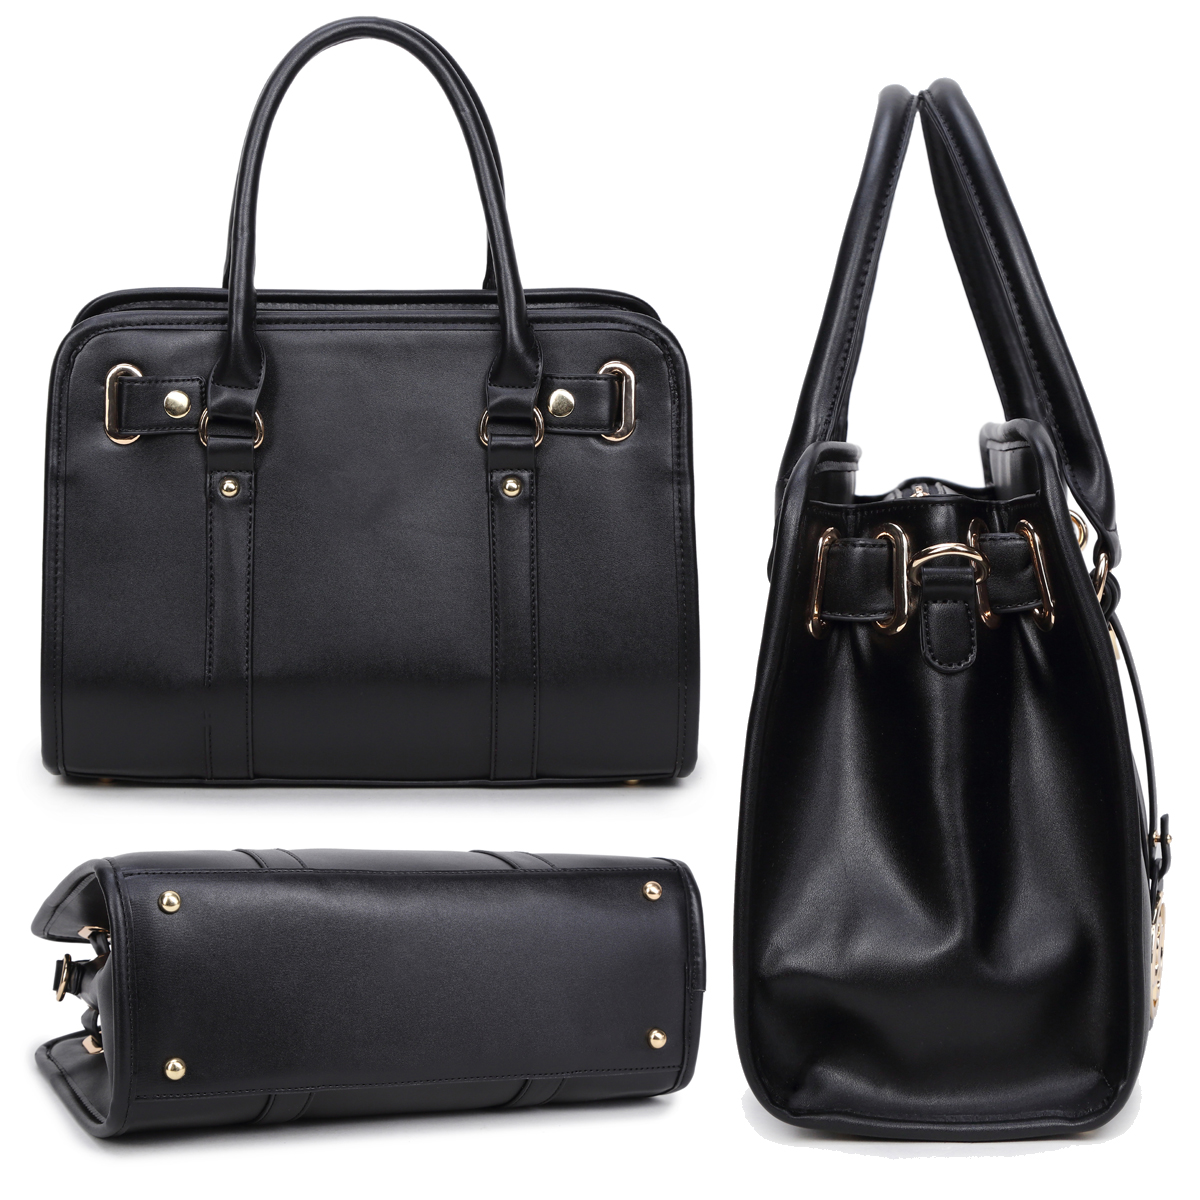 Dasein Medium Faux Leather Satchel with Matching Wallet